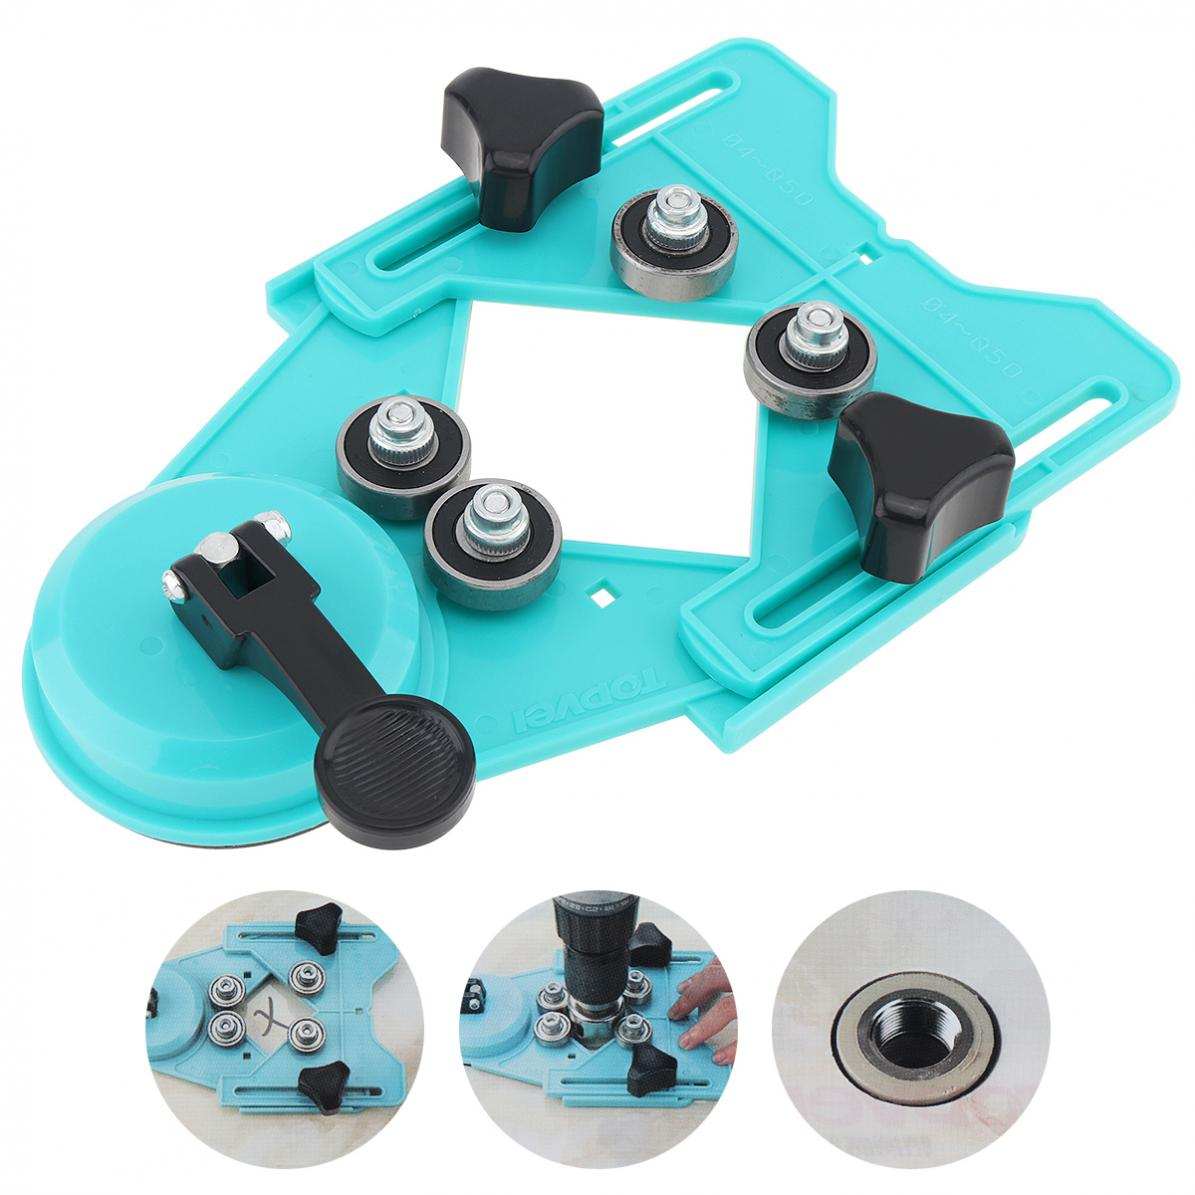 Portable Adjustable Engineering Plastic Tile Hole Locator With Rubber Suction Cup And 4-83mm Clamping Range Glass Tile Openings